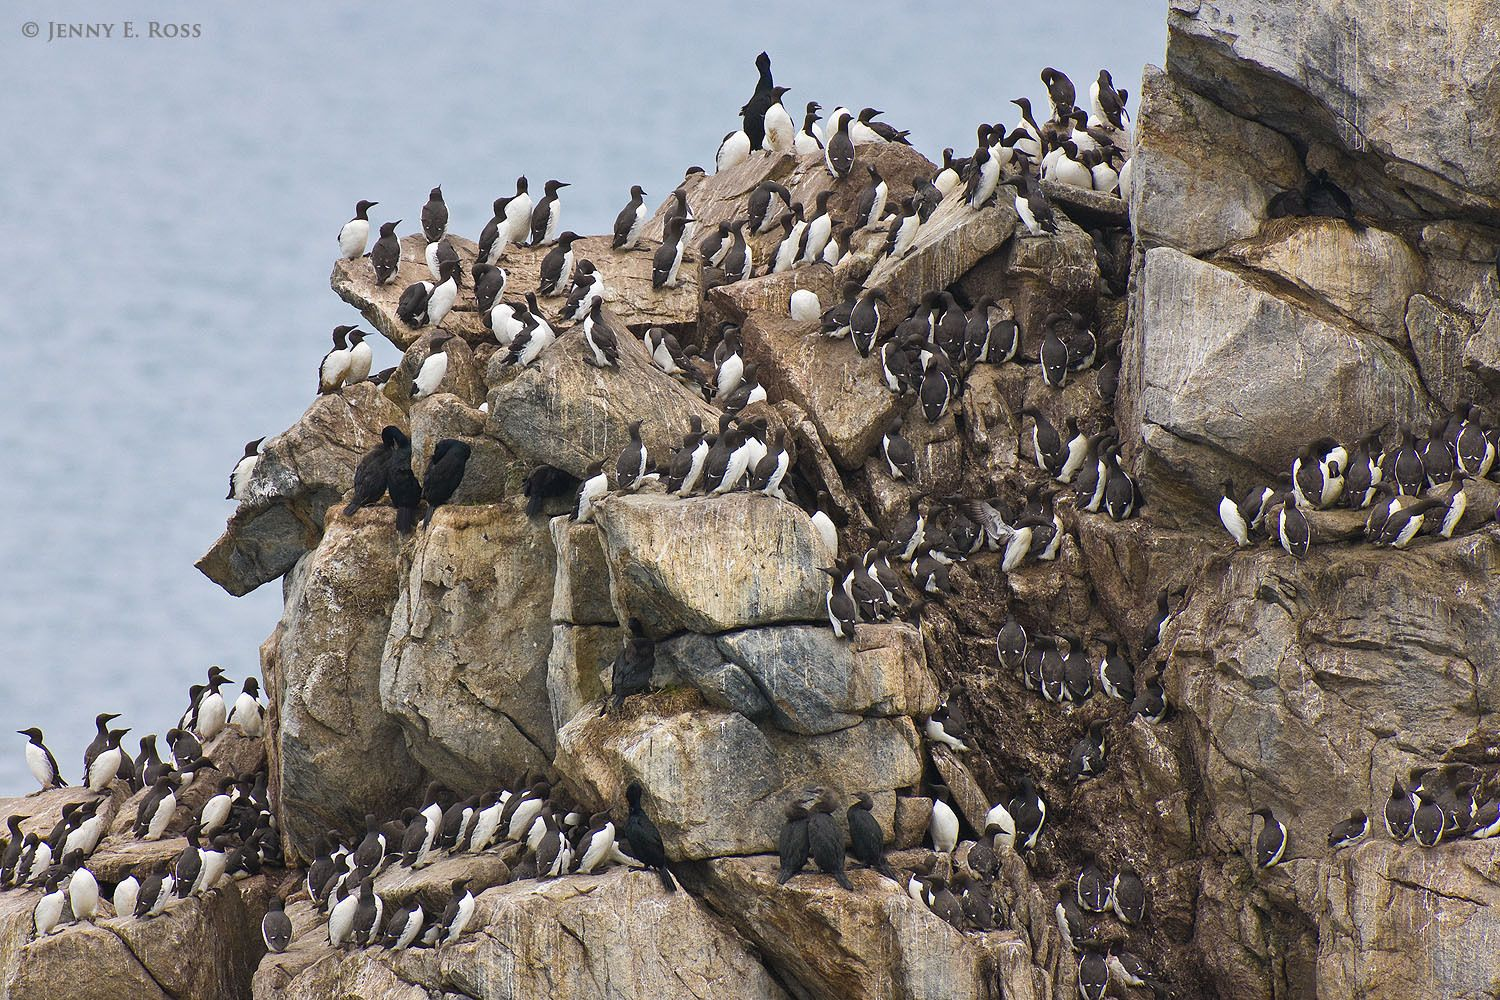 Common Guillemots (Uria aalge), aka Common Murre, Brunnich's Guillemots (Uria lomvia arra), aka Thick-billed Murre, and Pelagic Cormorants (Phalacrocorax pelagicus) in a seabird colony.